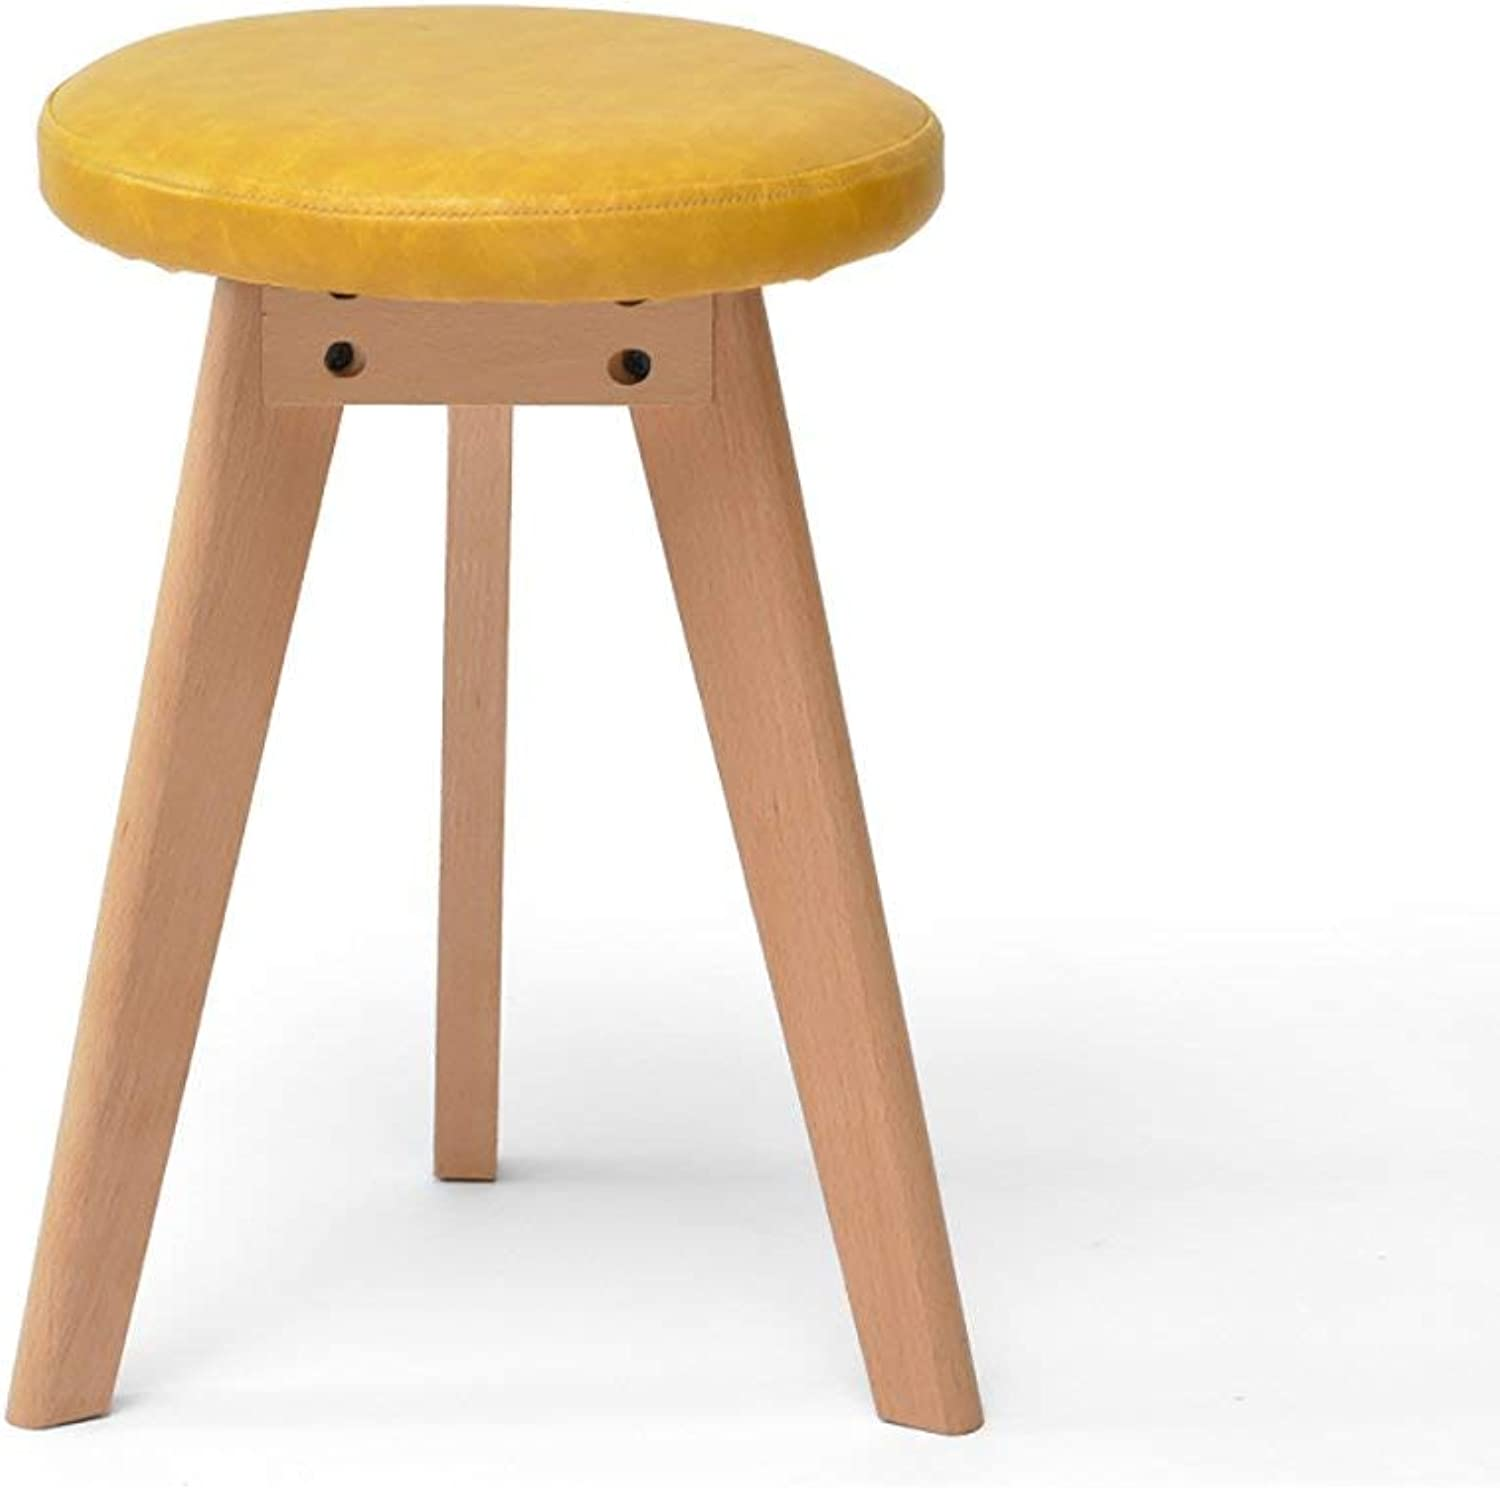 EU90 Solid wood stool fashion dressing stool creative makeup stool fabric stool dining stool - small stool (color   Yellow, Size   A set of 1)